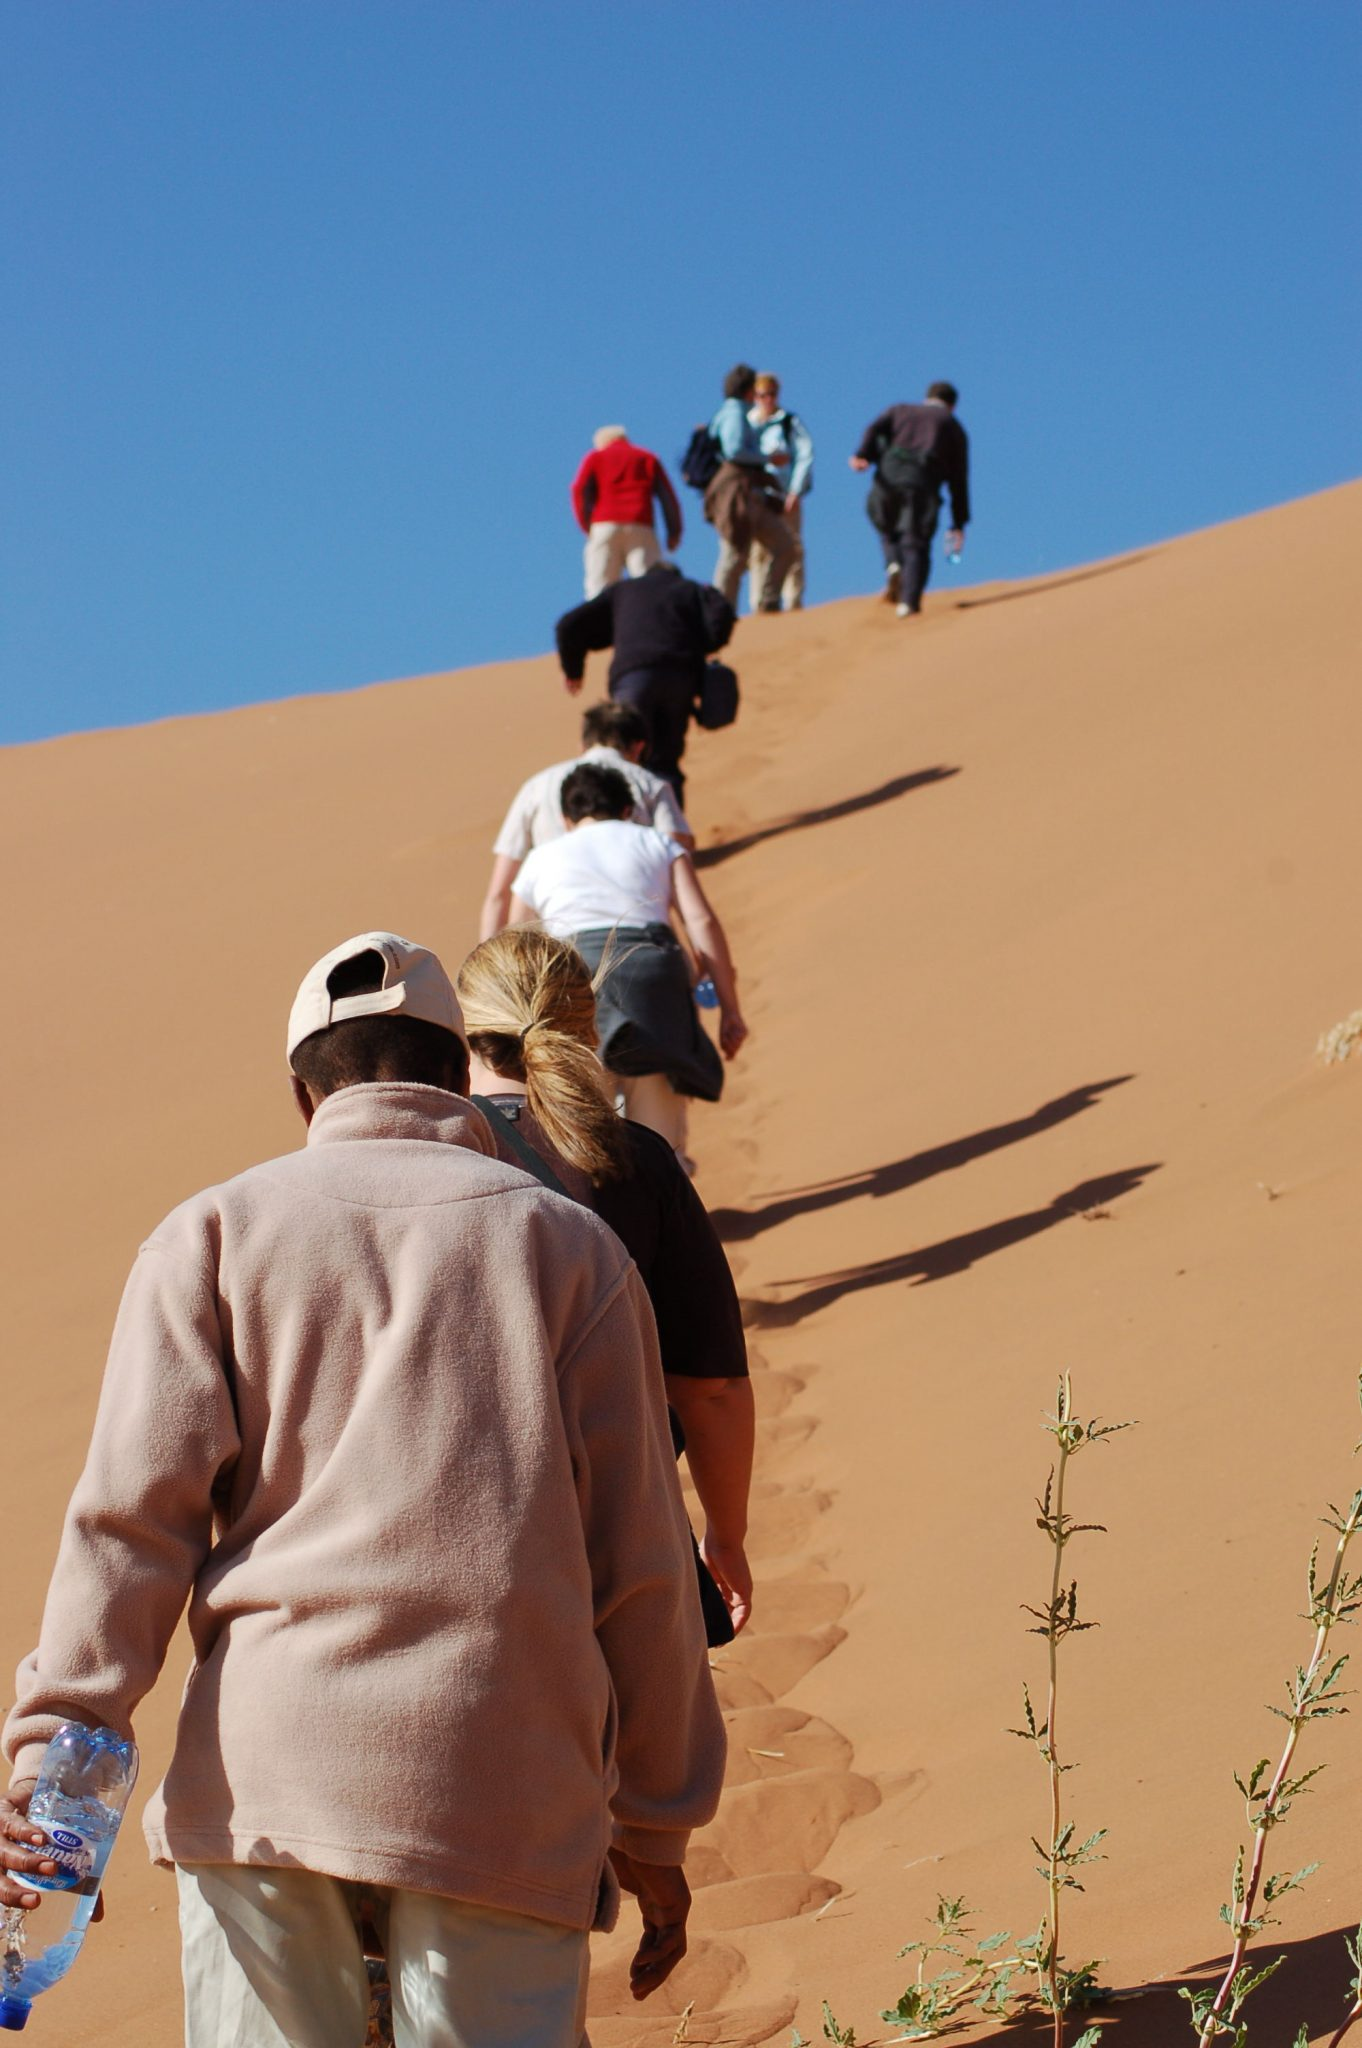 Solo Travel Groups: Best Organised Tours for Single Travel